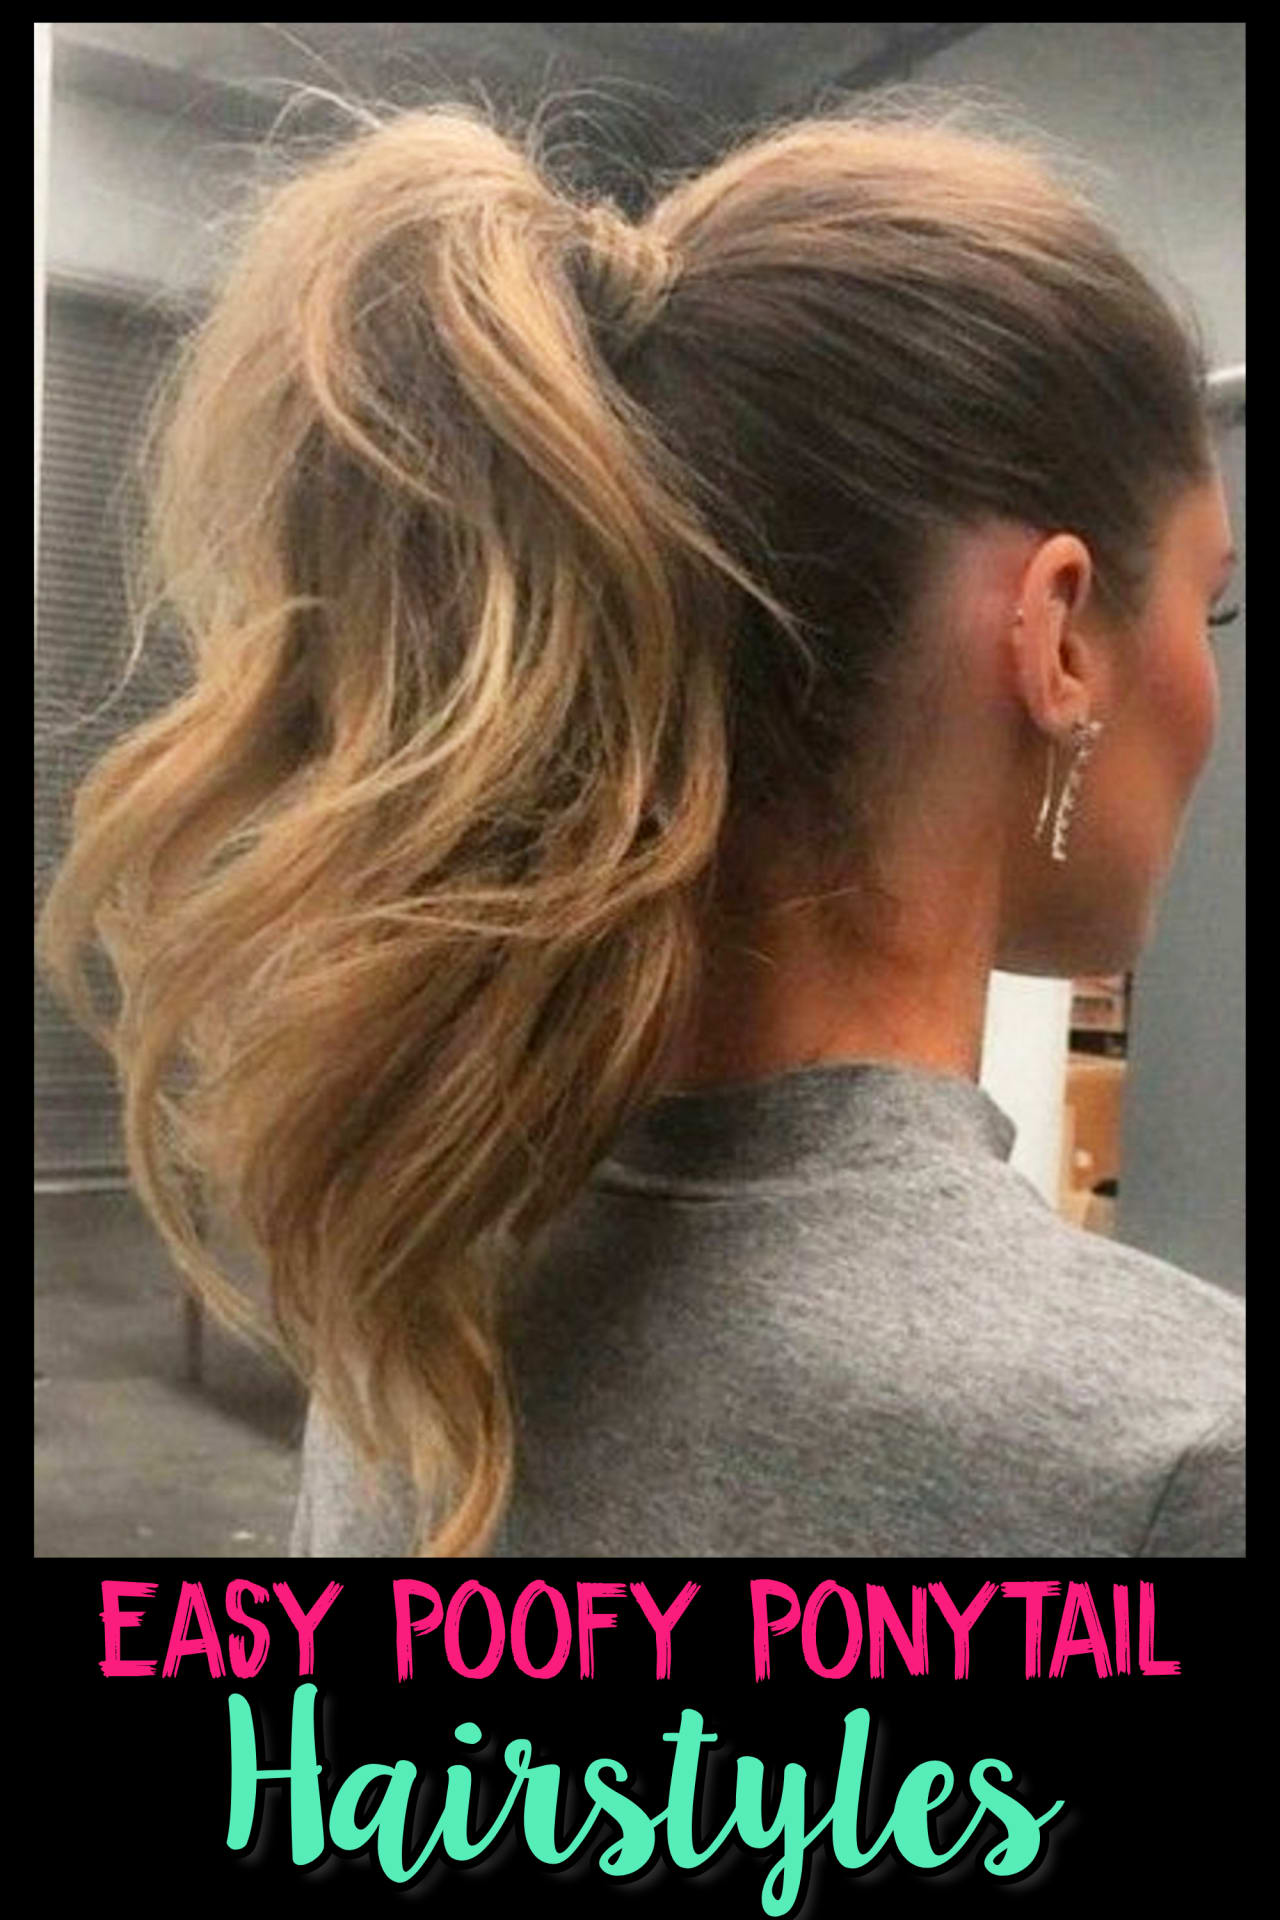 Lazy Hairstyles!  Simple lazy ponytails hairstyles to get a high poofy ponytail the easy way